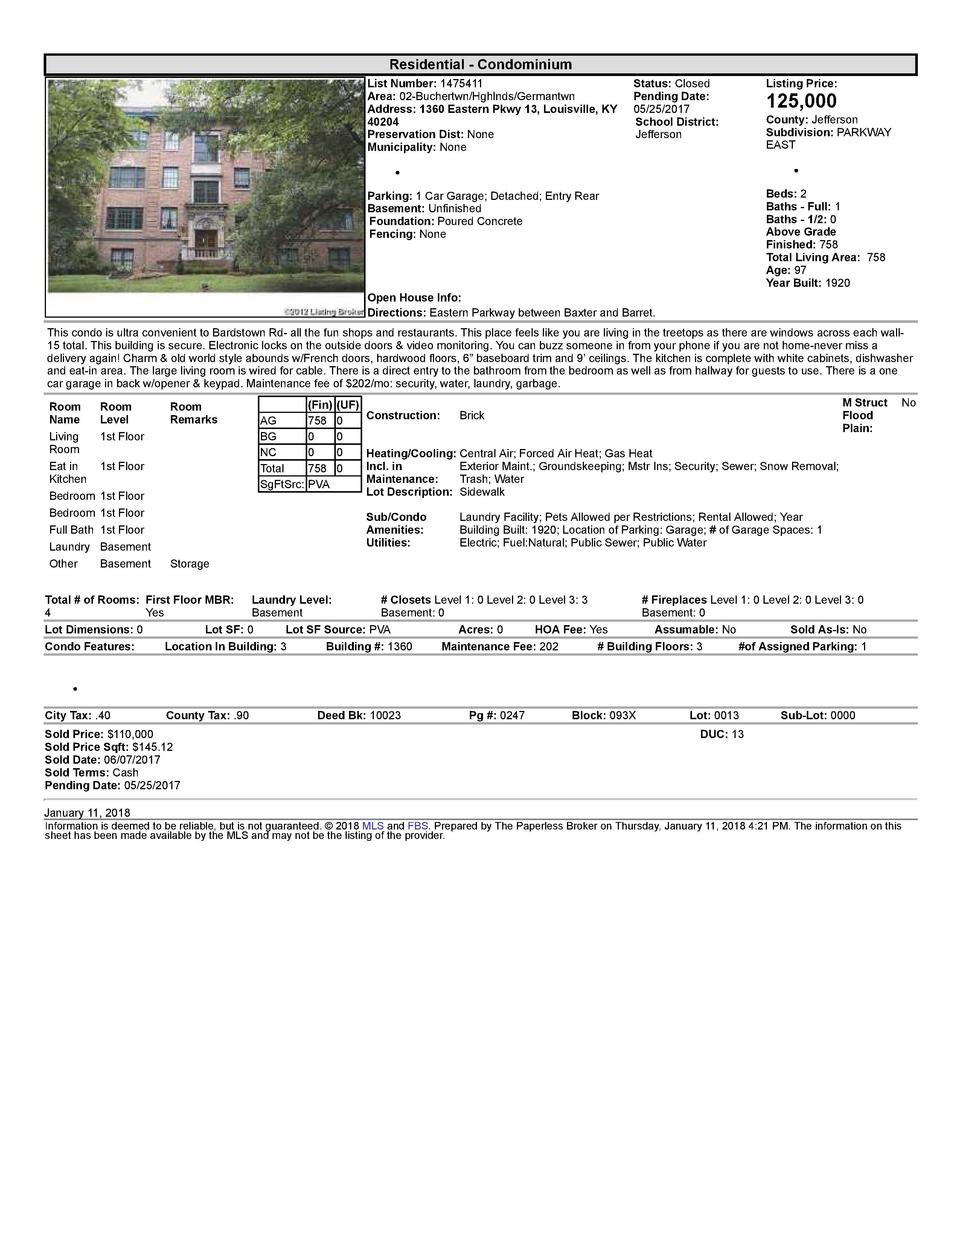 Residential      Condominium List  Number   1475411    Status   Closed Area   02  Buchertwn Hghlnds Germantwn Pending  ...